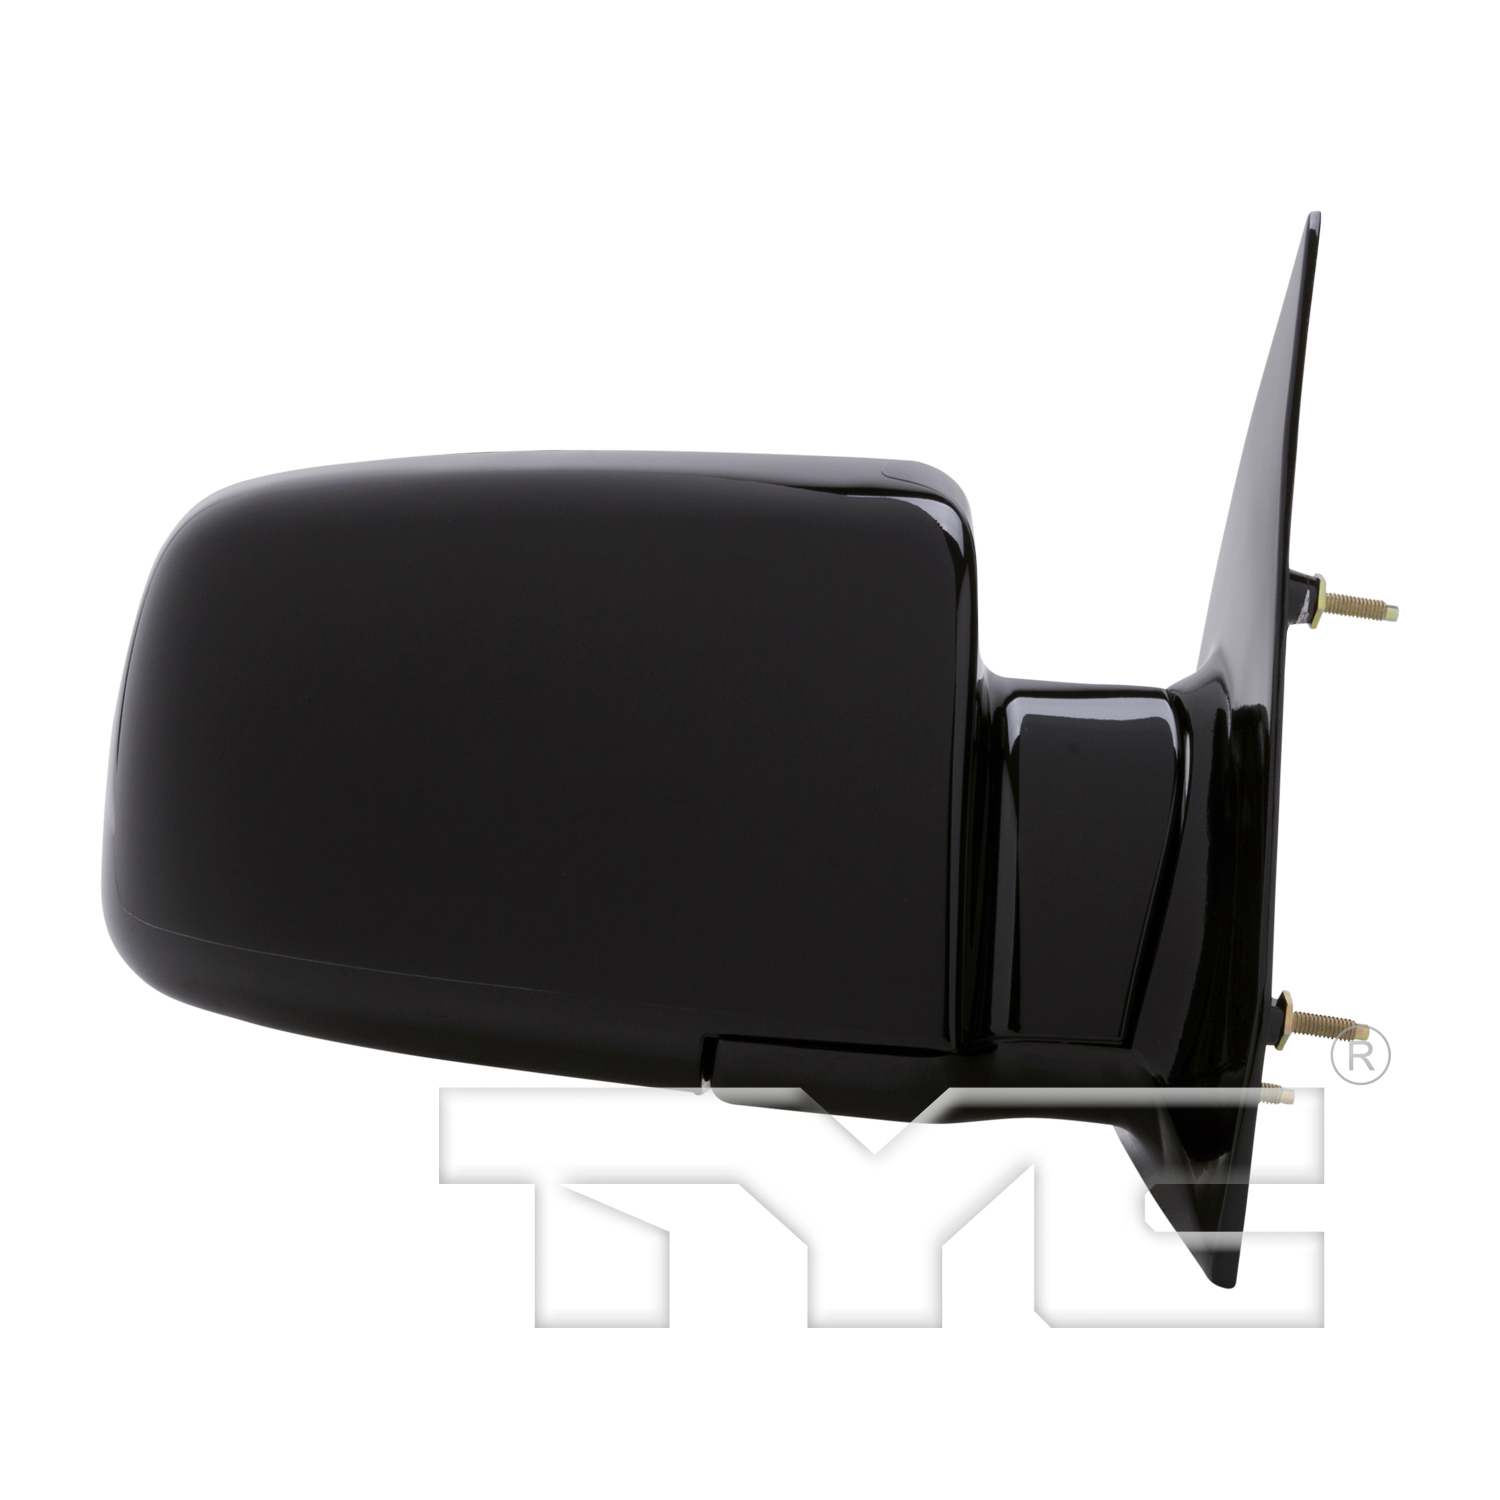 Aftermarket MIRRORS for CHEVROLET - ASTRO VAN, ASTRO,88-05,RIGHT HANDSIDE MIRROR MANUAL